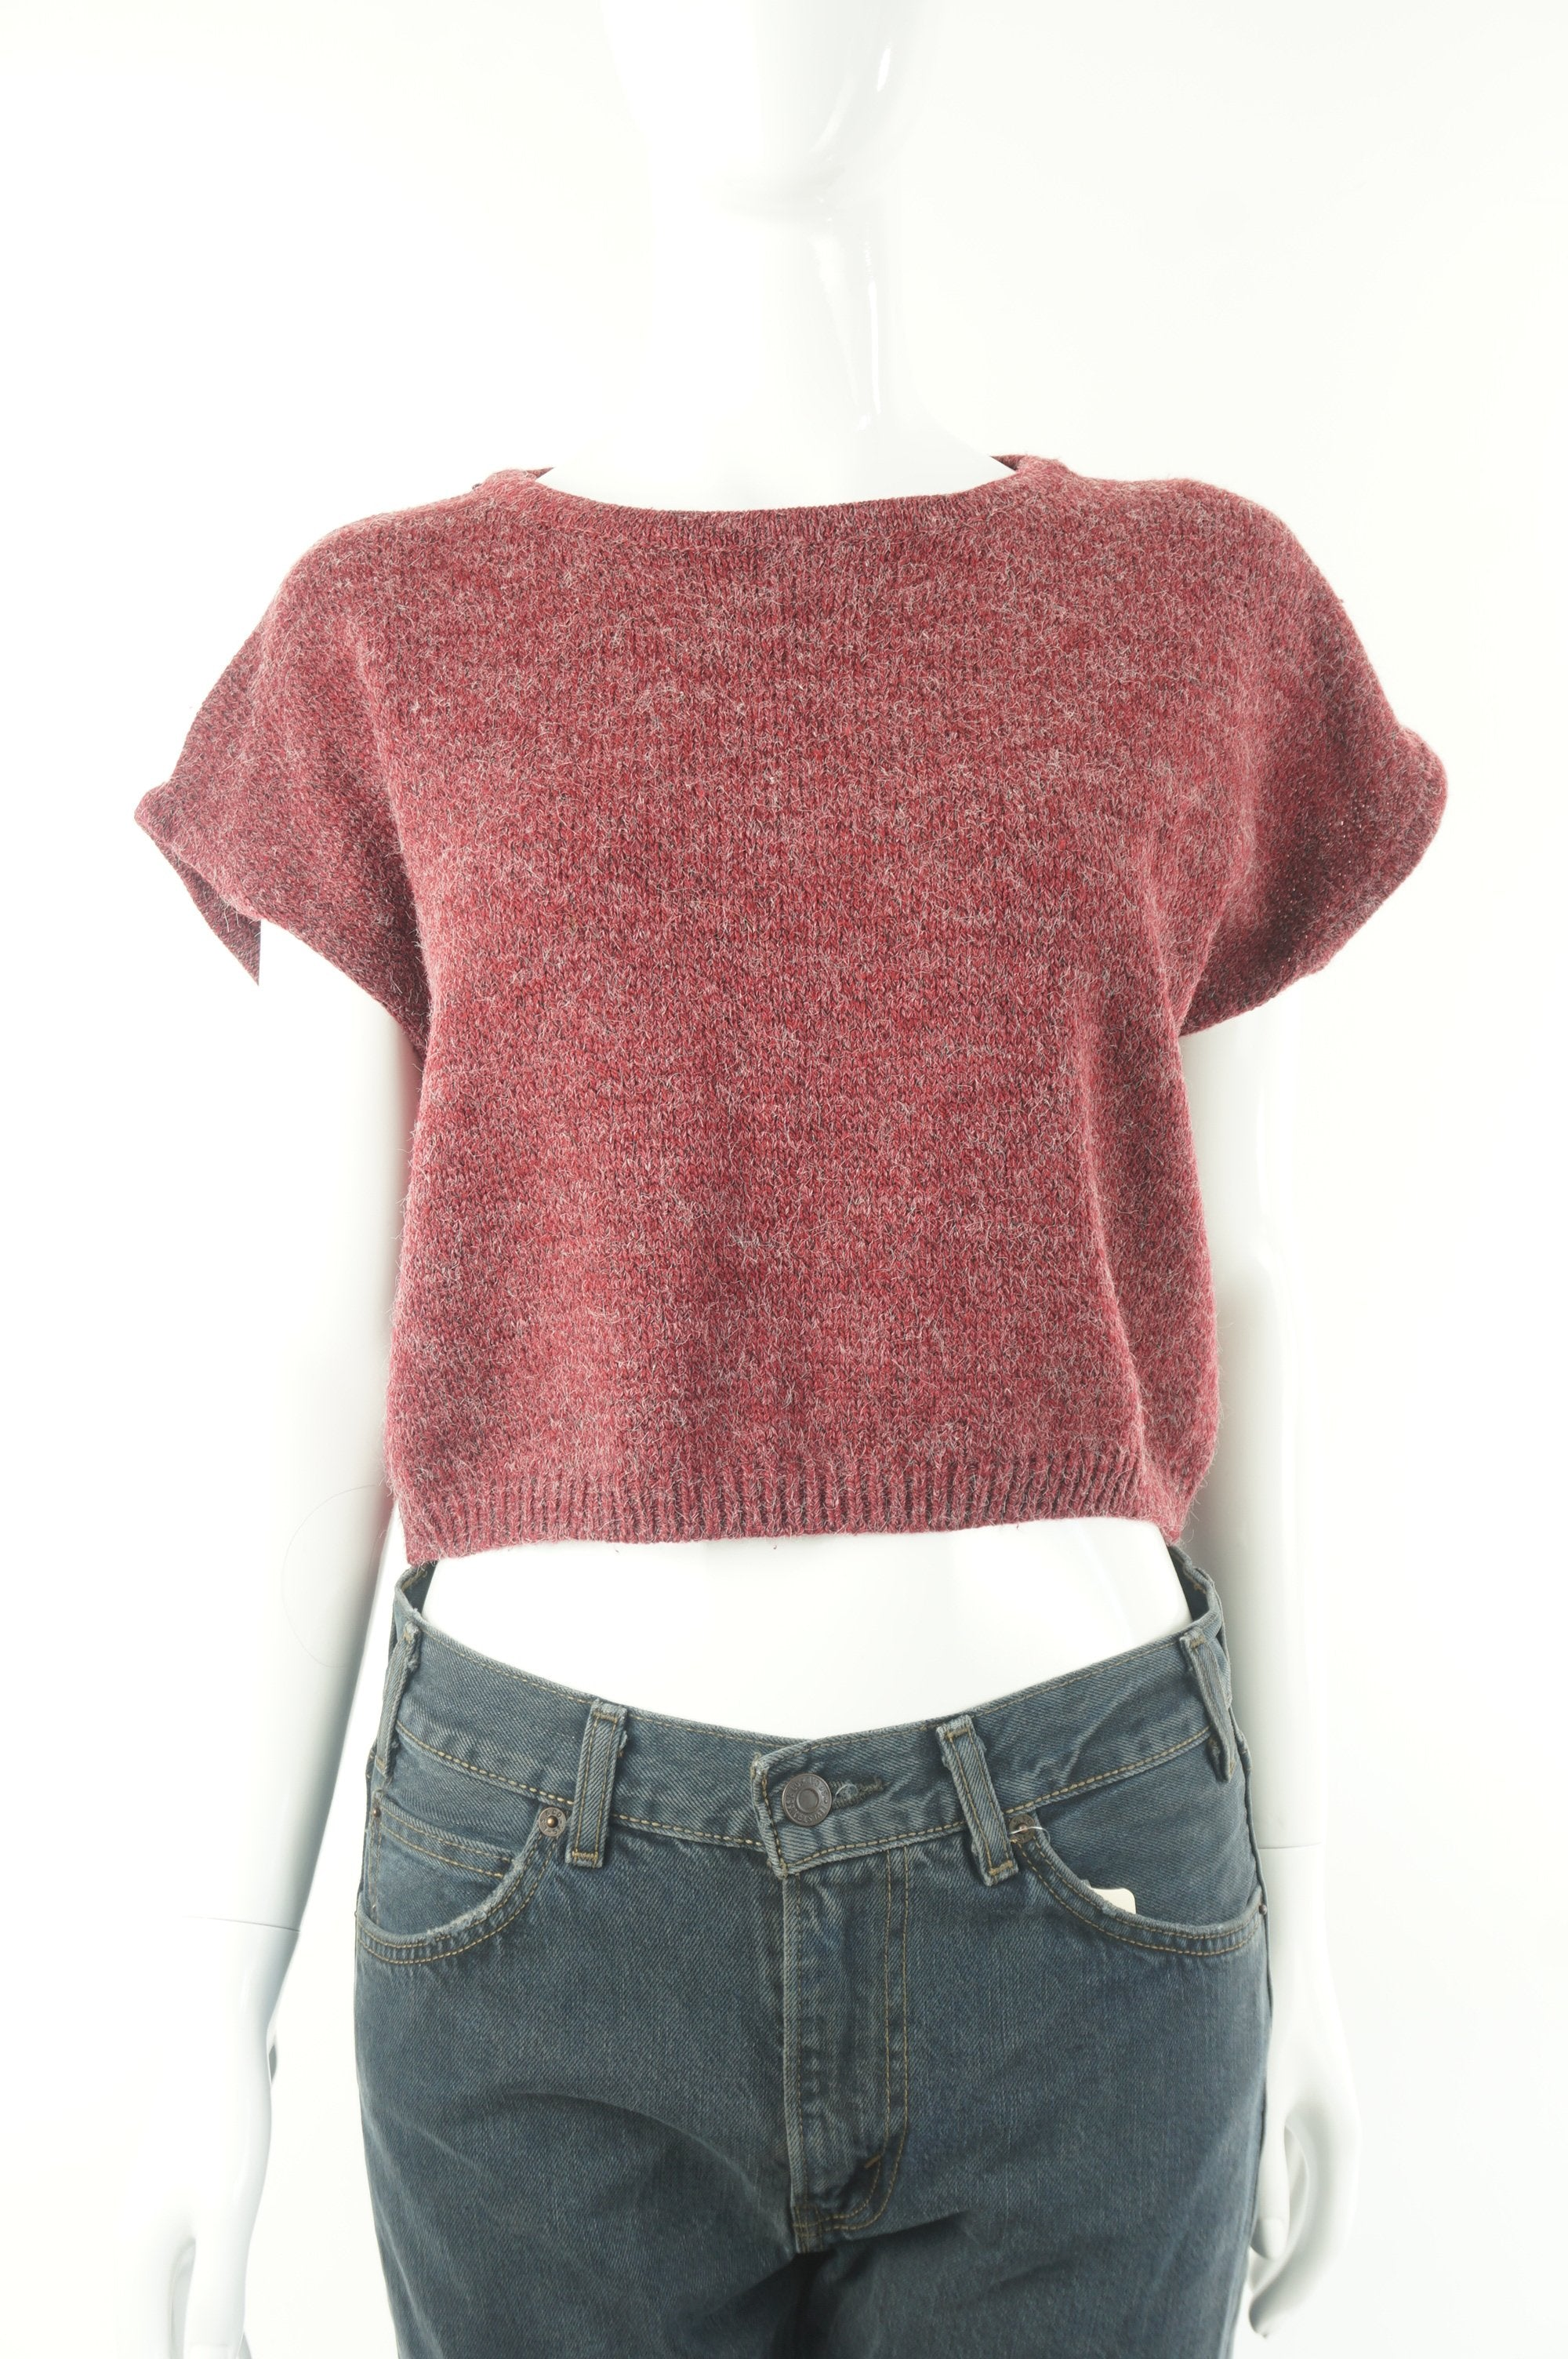 Editor Capped Sleeve Crop Top Sweater, Stylish crop-top sweater for the spring., Red, , women's Tops, women's Red Tops, Editor women's Tops, aritzia women's crop top sweater, aritzia women's crop top sweater, aritzia women's short sweater, women's red short sleeve crop top